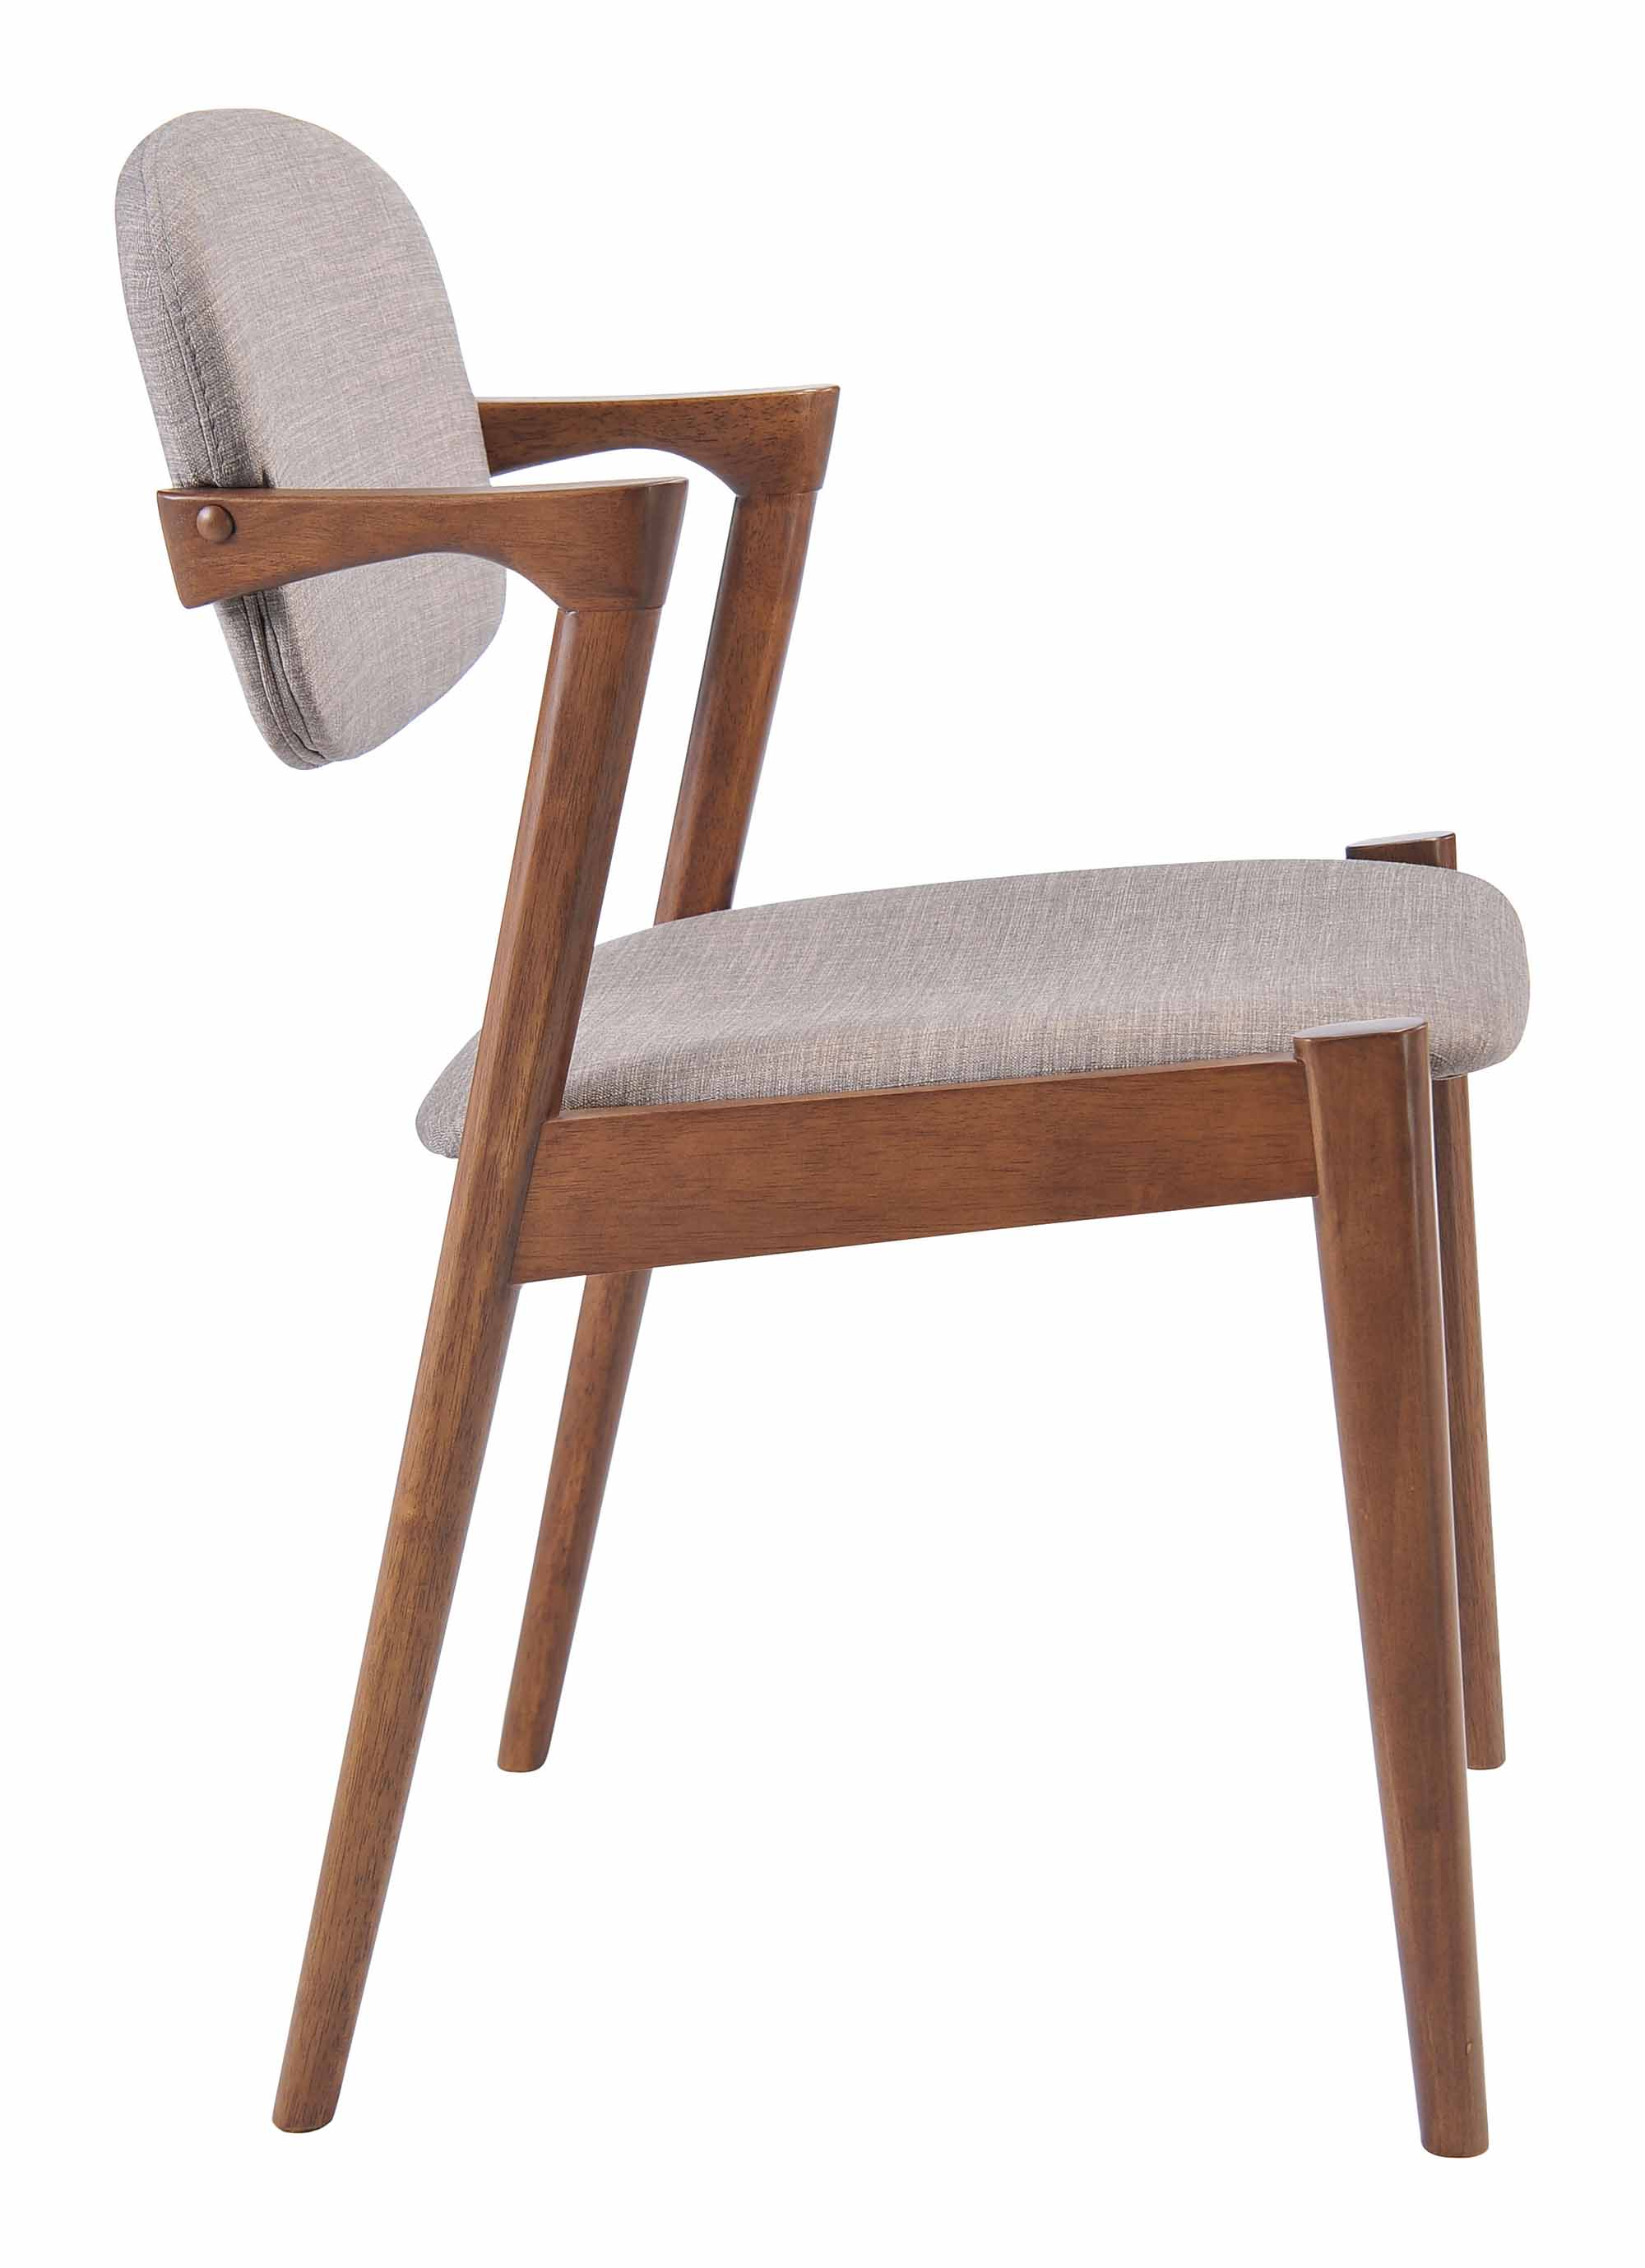 Wondrous Brickell Dining Chair Dove Gray Set Of 2 By Zuo Modern Dailytribune Chair Design For Home Dailytribuneorg